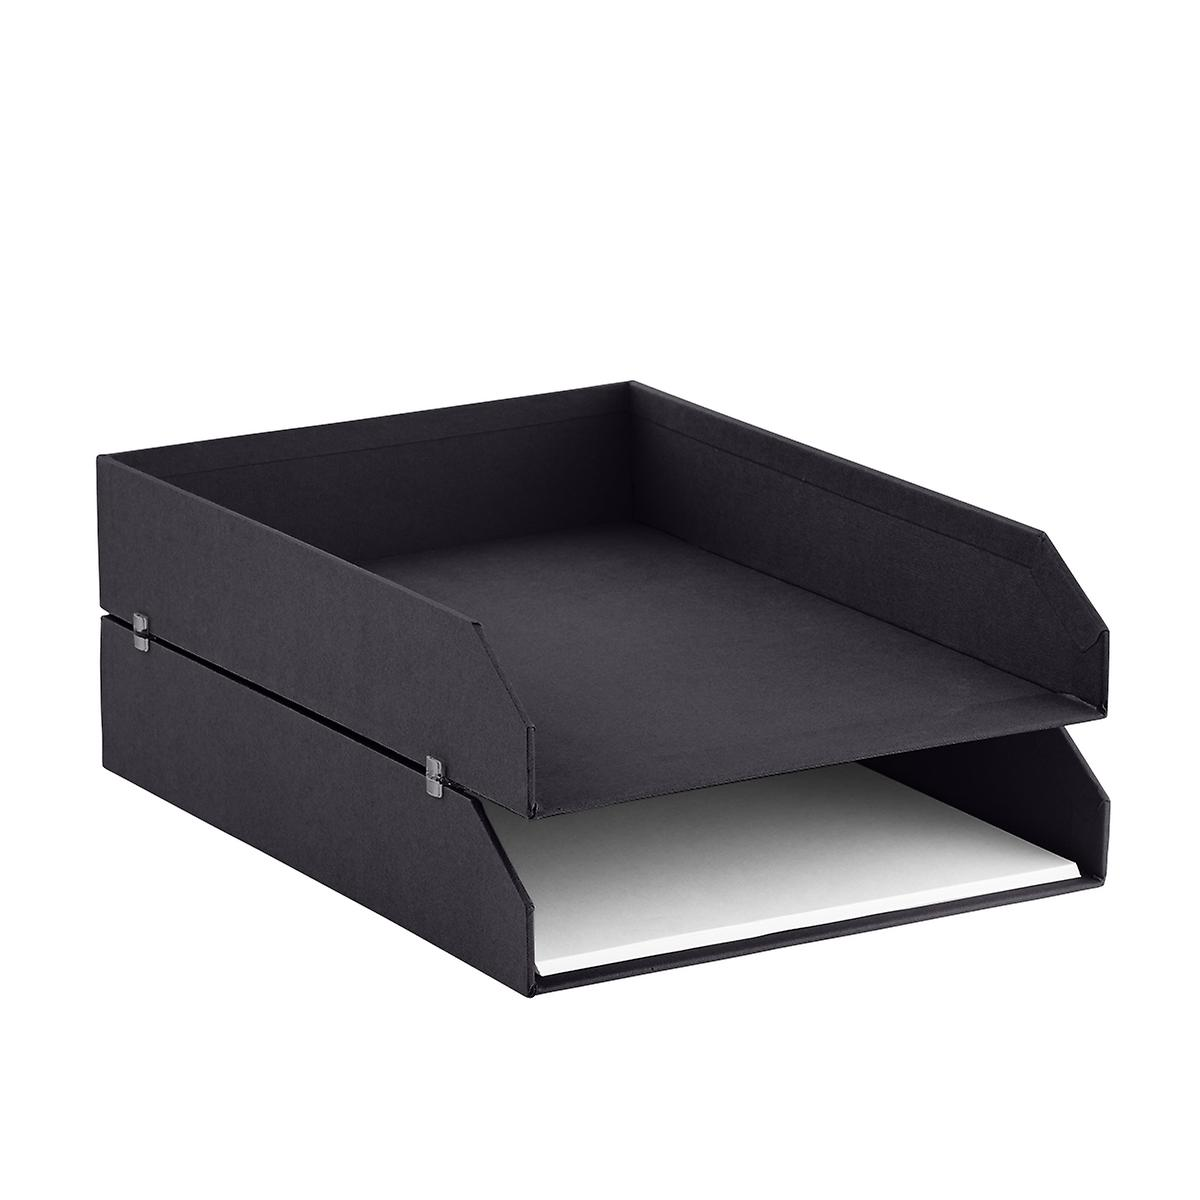 Bigso Graphite Stockholm Stackable Letter Trays Set of 2